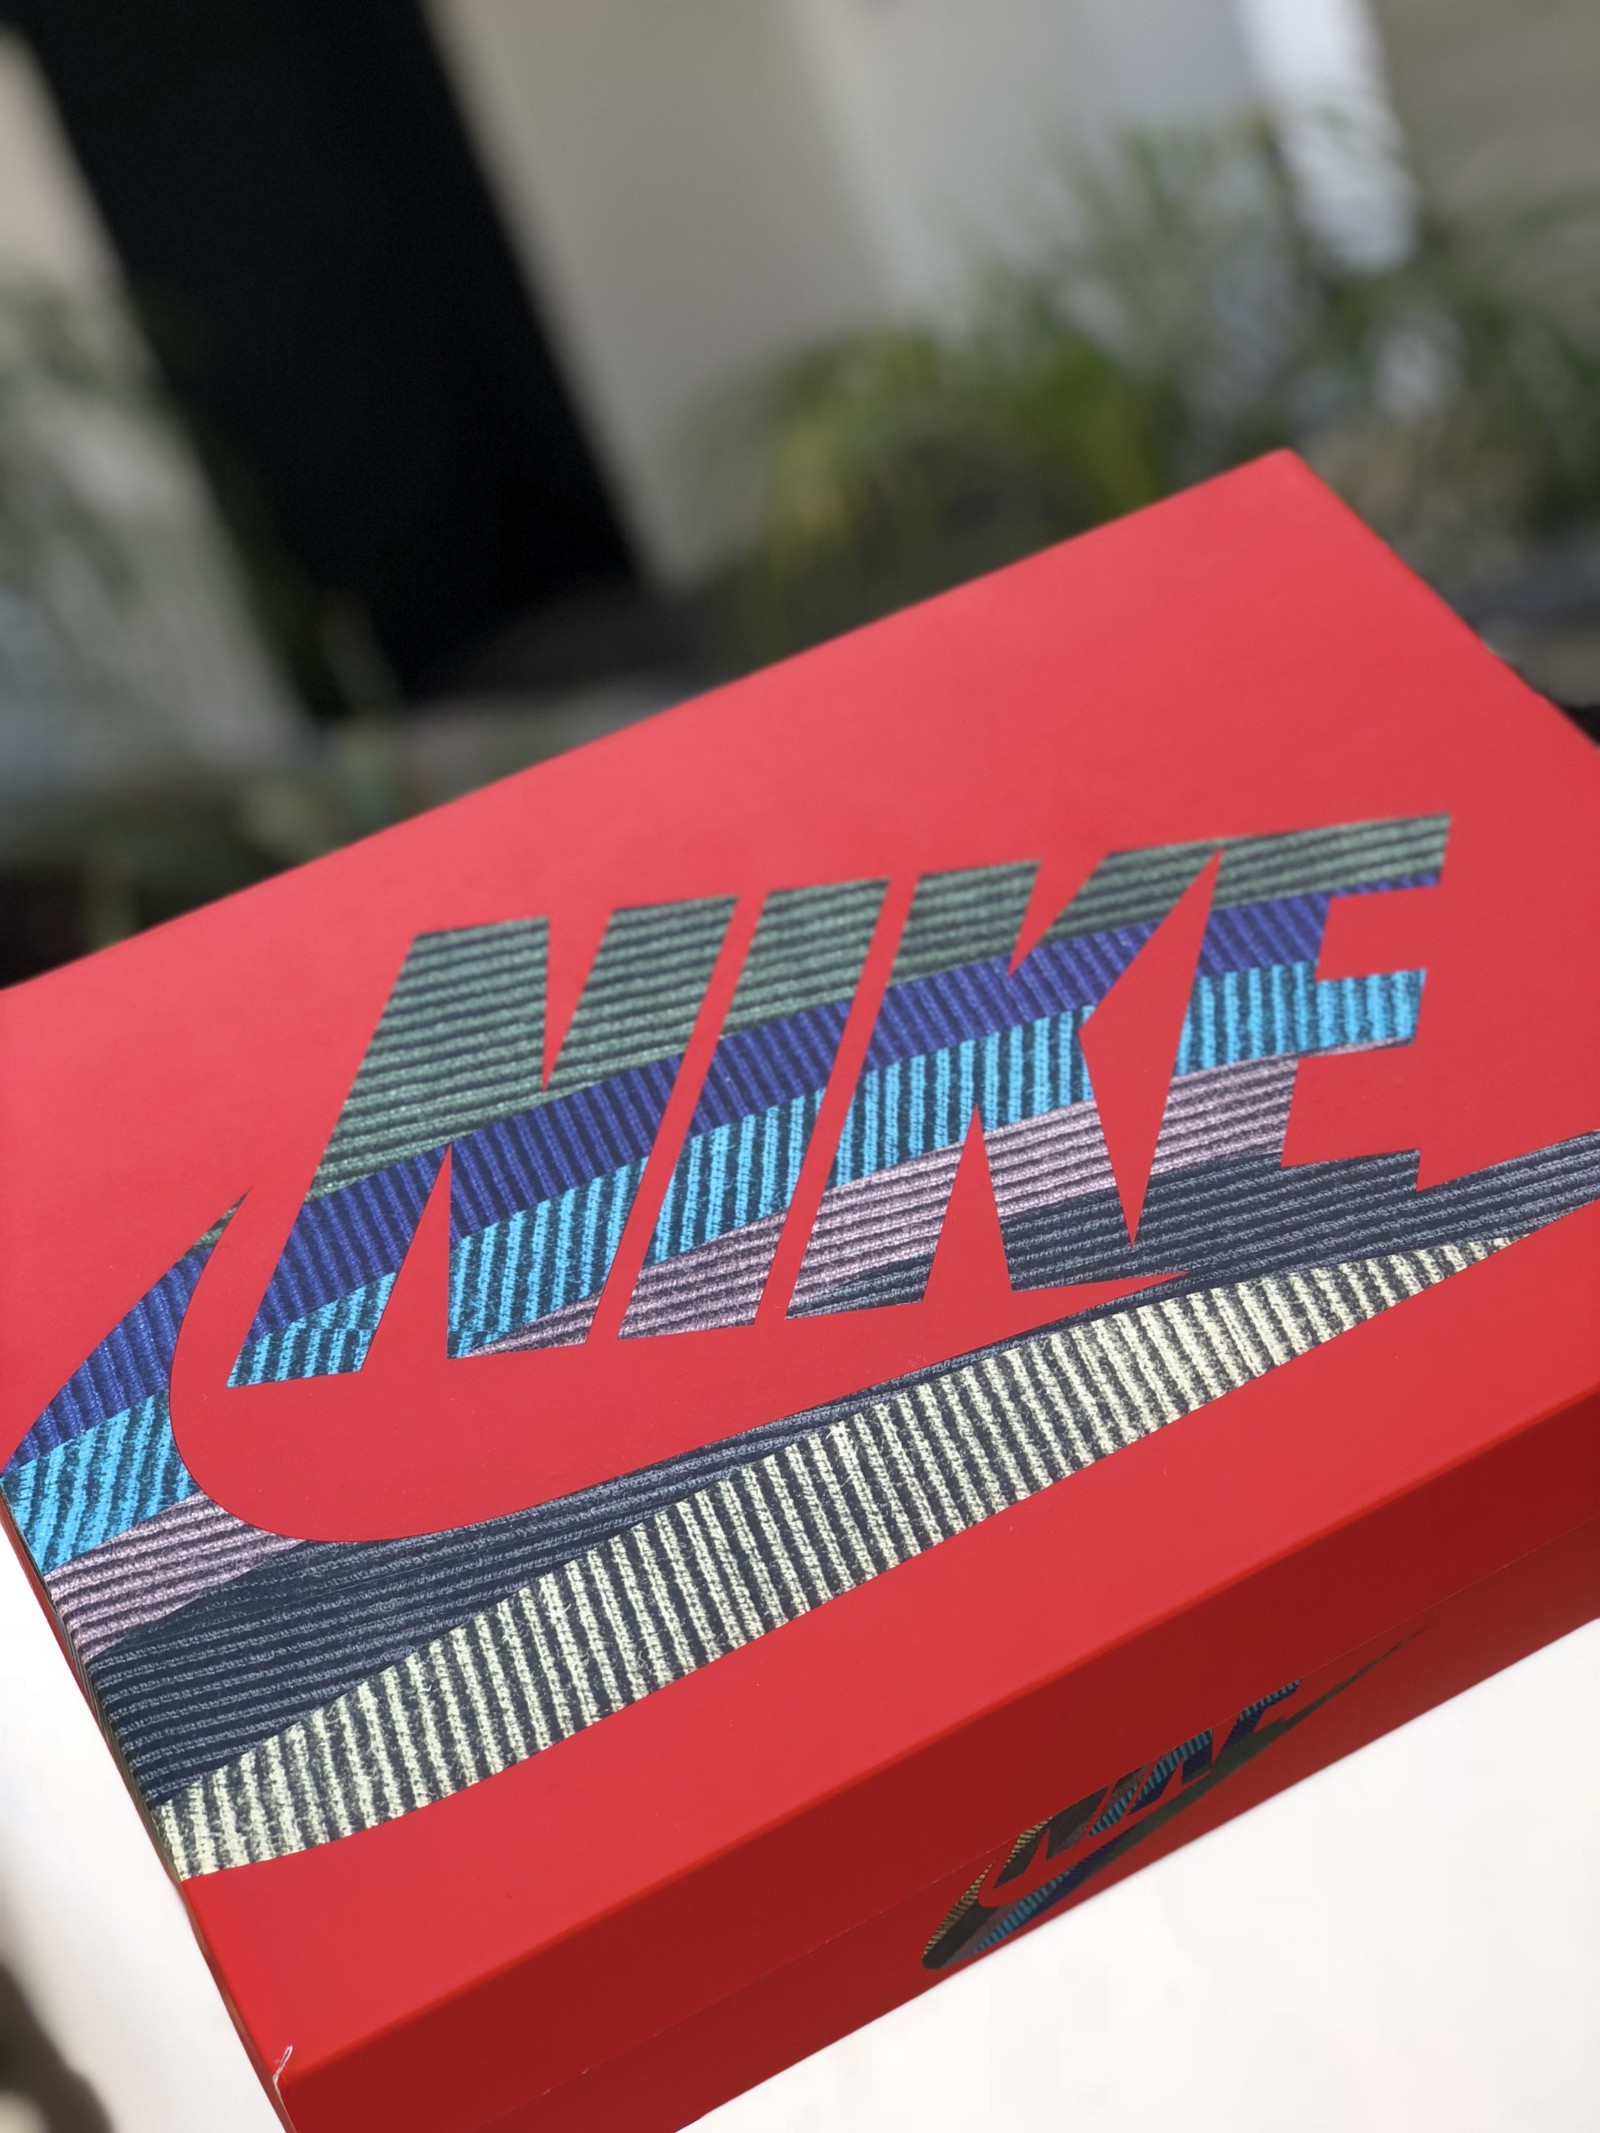 finest selection 87fce b2310 The design of the box is made to match with the sneaker. The base color of  the box is the typical red Air Max box. The Nike swoosh logos on this box  ...